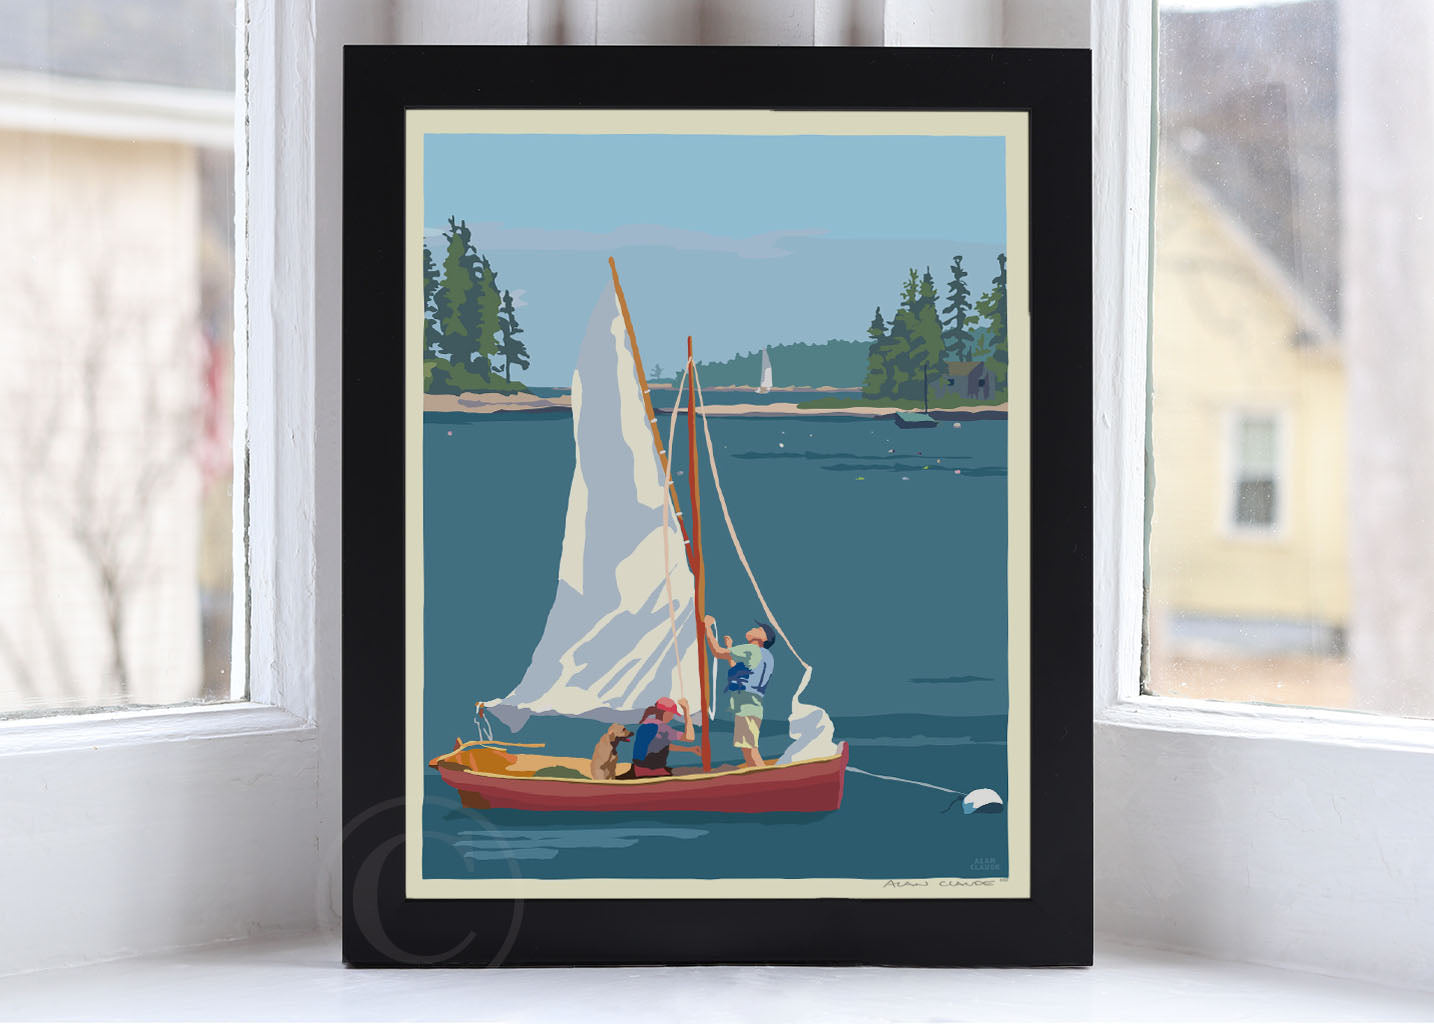 "Hoist The Sail Art Print 8"" x 10"" Framed Wall Poster By Alan Claude"